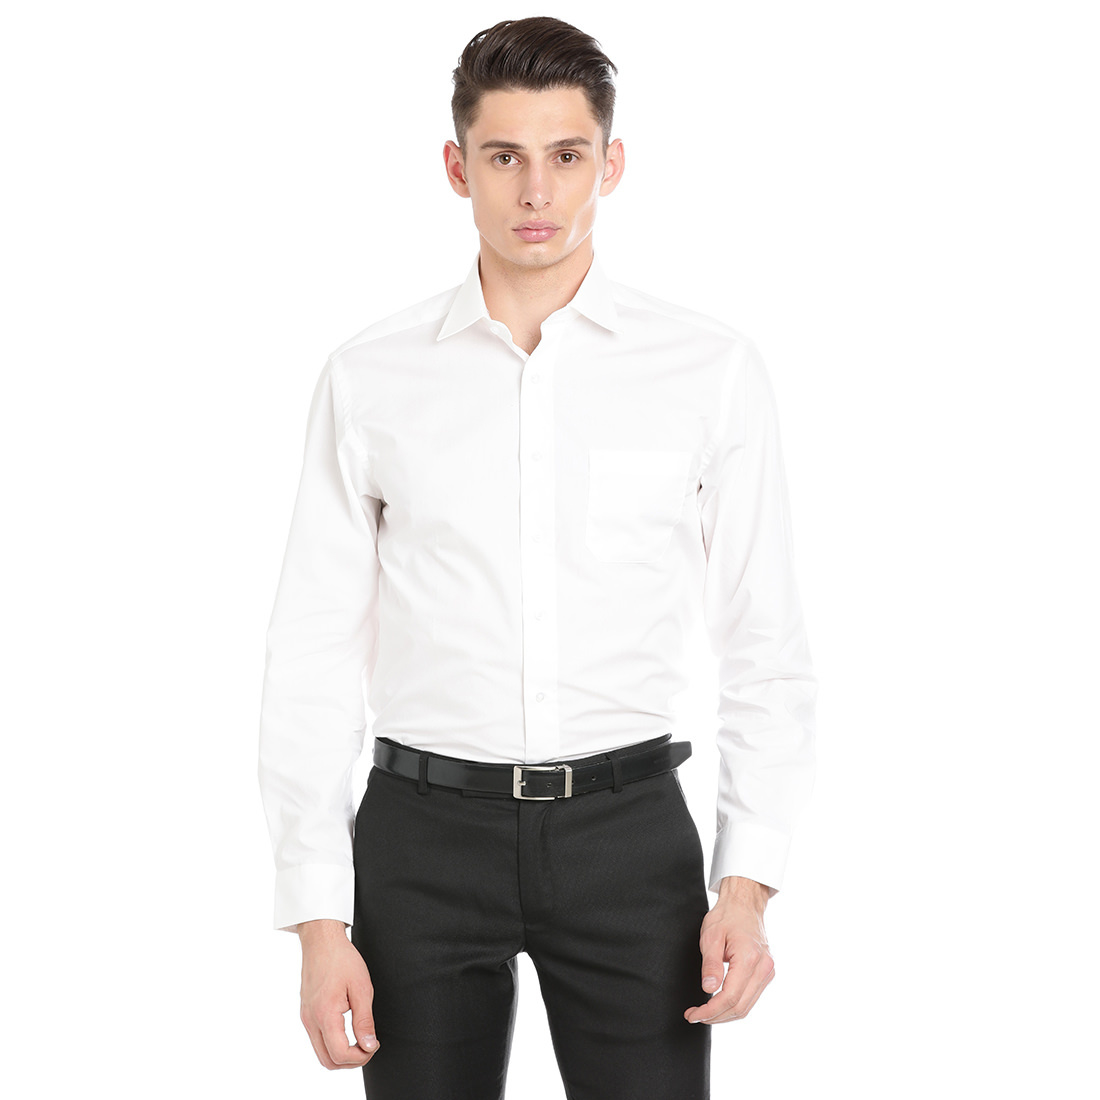 Paradigm White Color Formal Pure Cotton Non-Iron Shirt